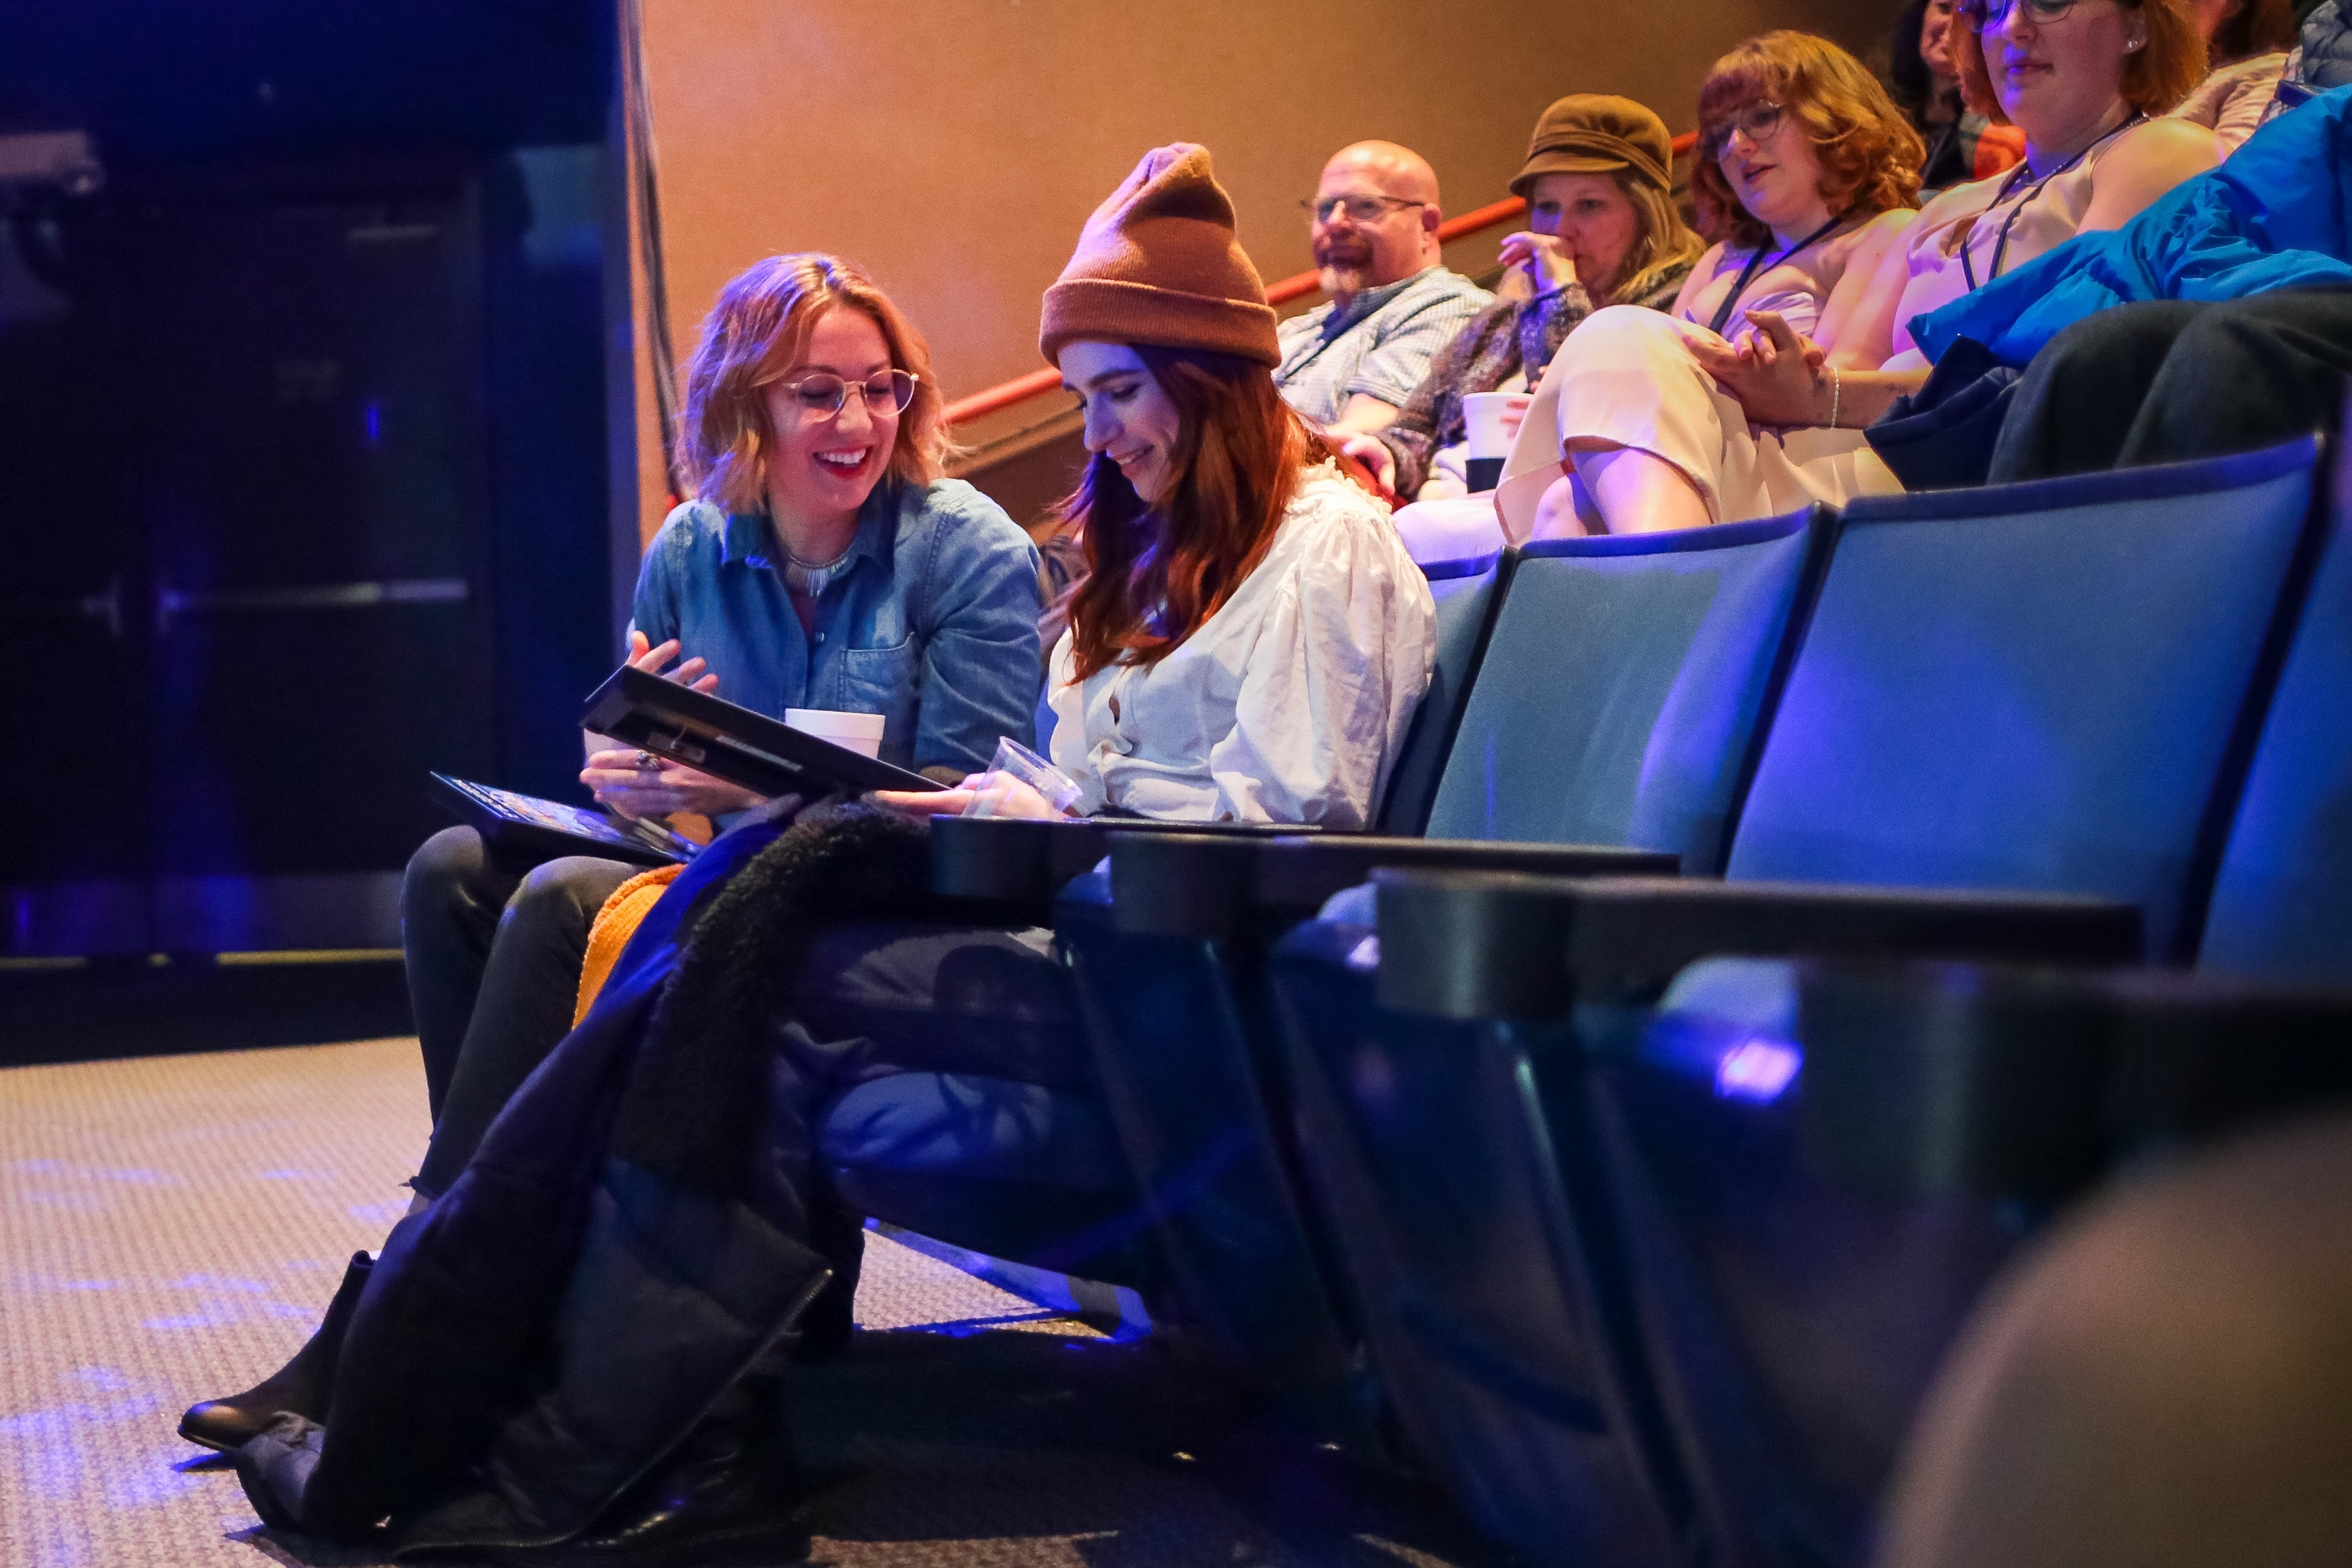 (All Hail) Vail Film Festival: A Place Where Women Are Seen, Heard, And Celebrated